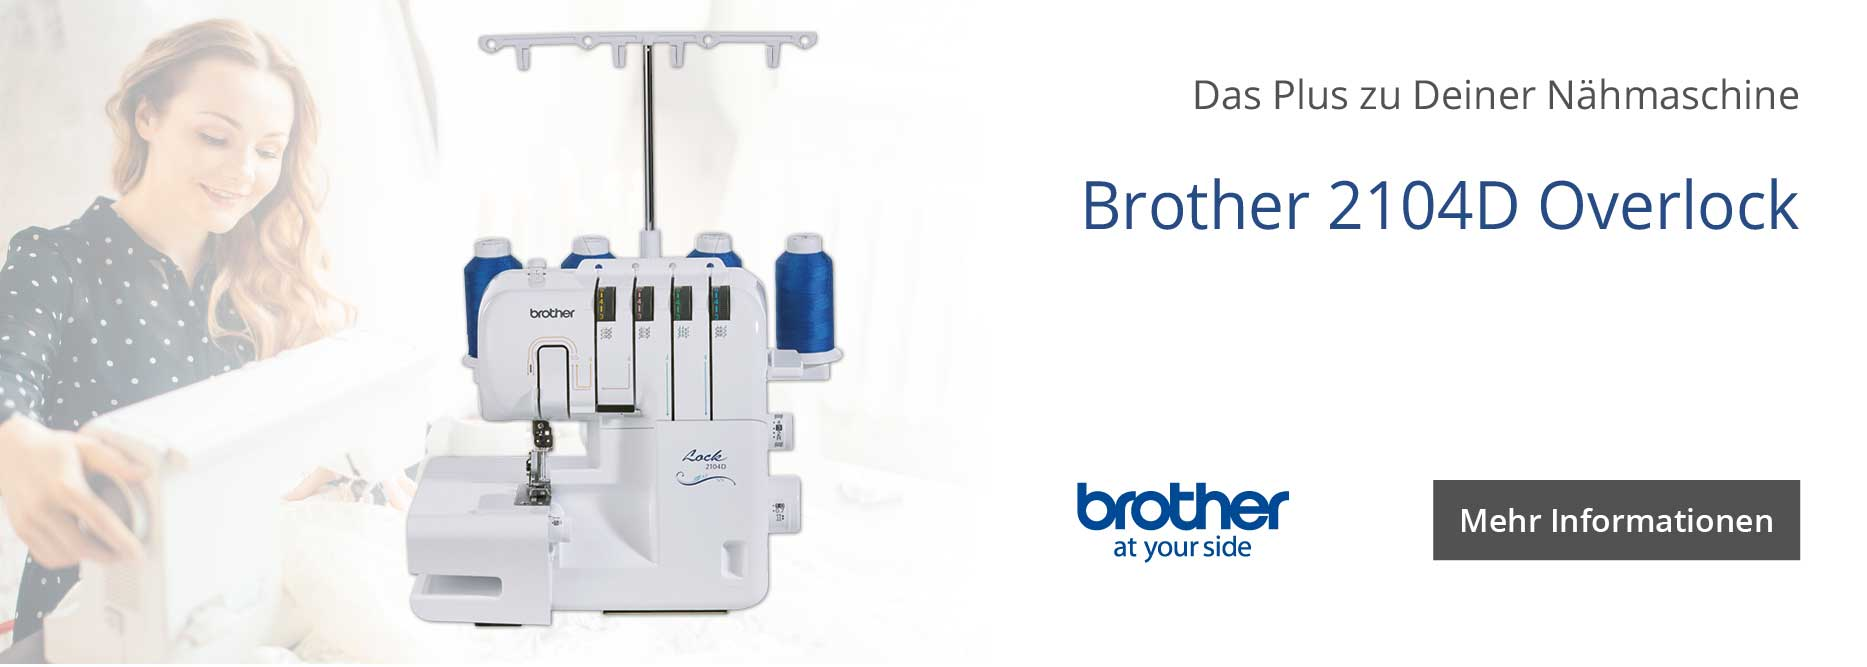 Brother-2104D-Overlock